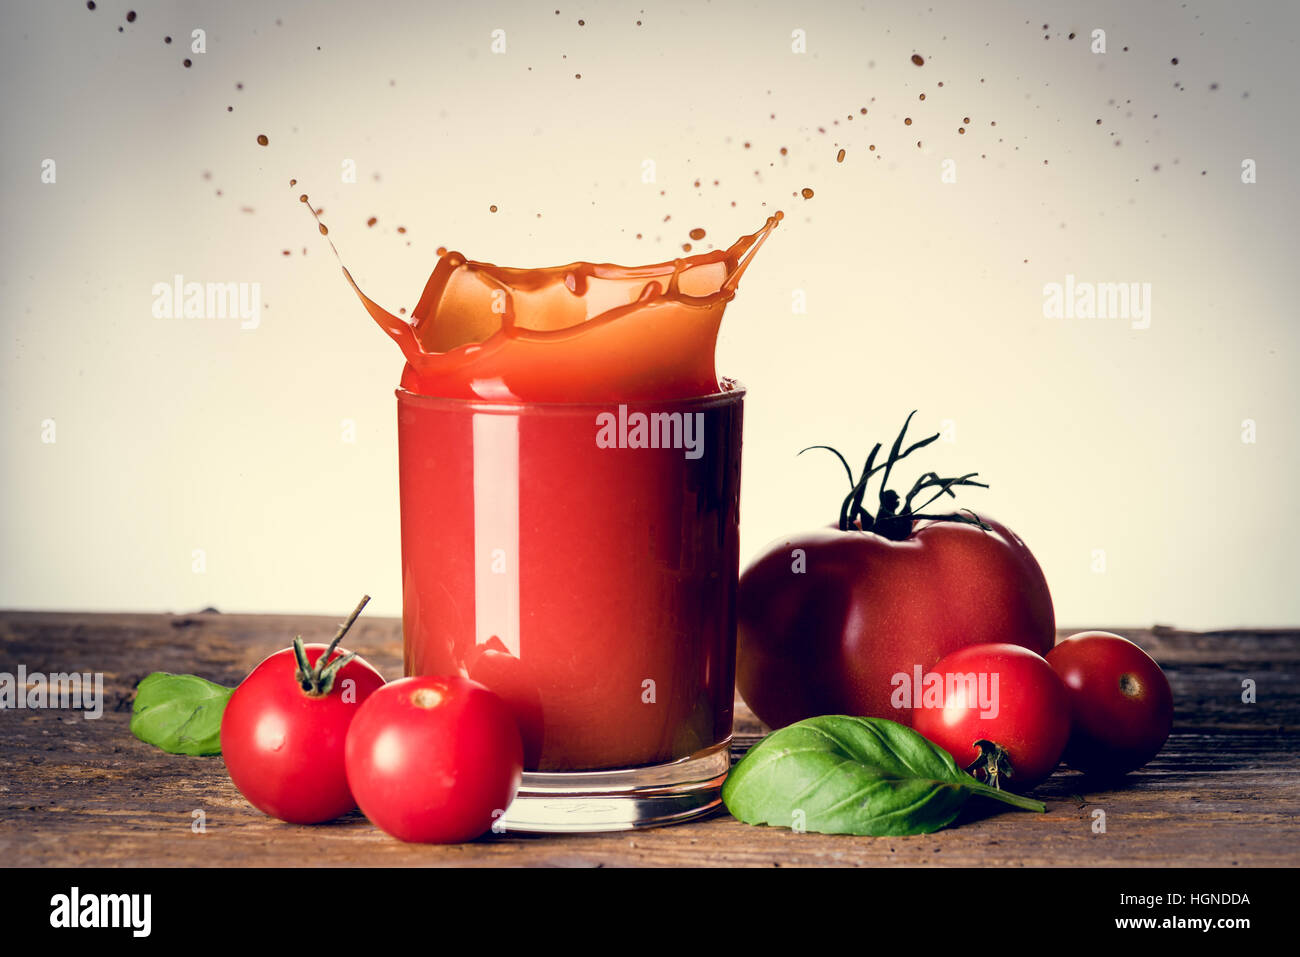 Tomato juice splashing over the glass on the wooden table - Stock Image